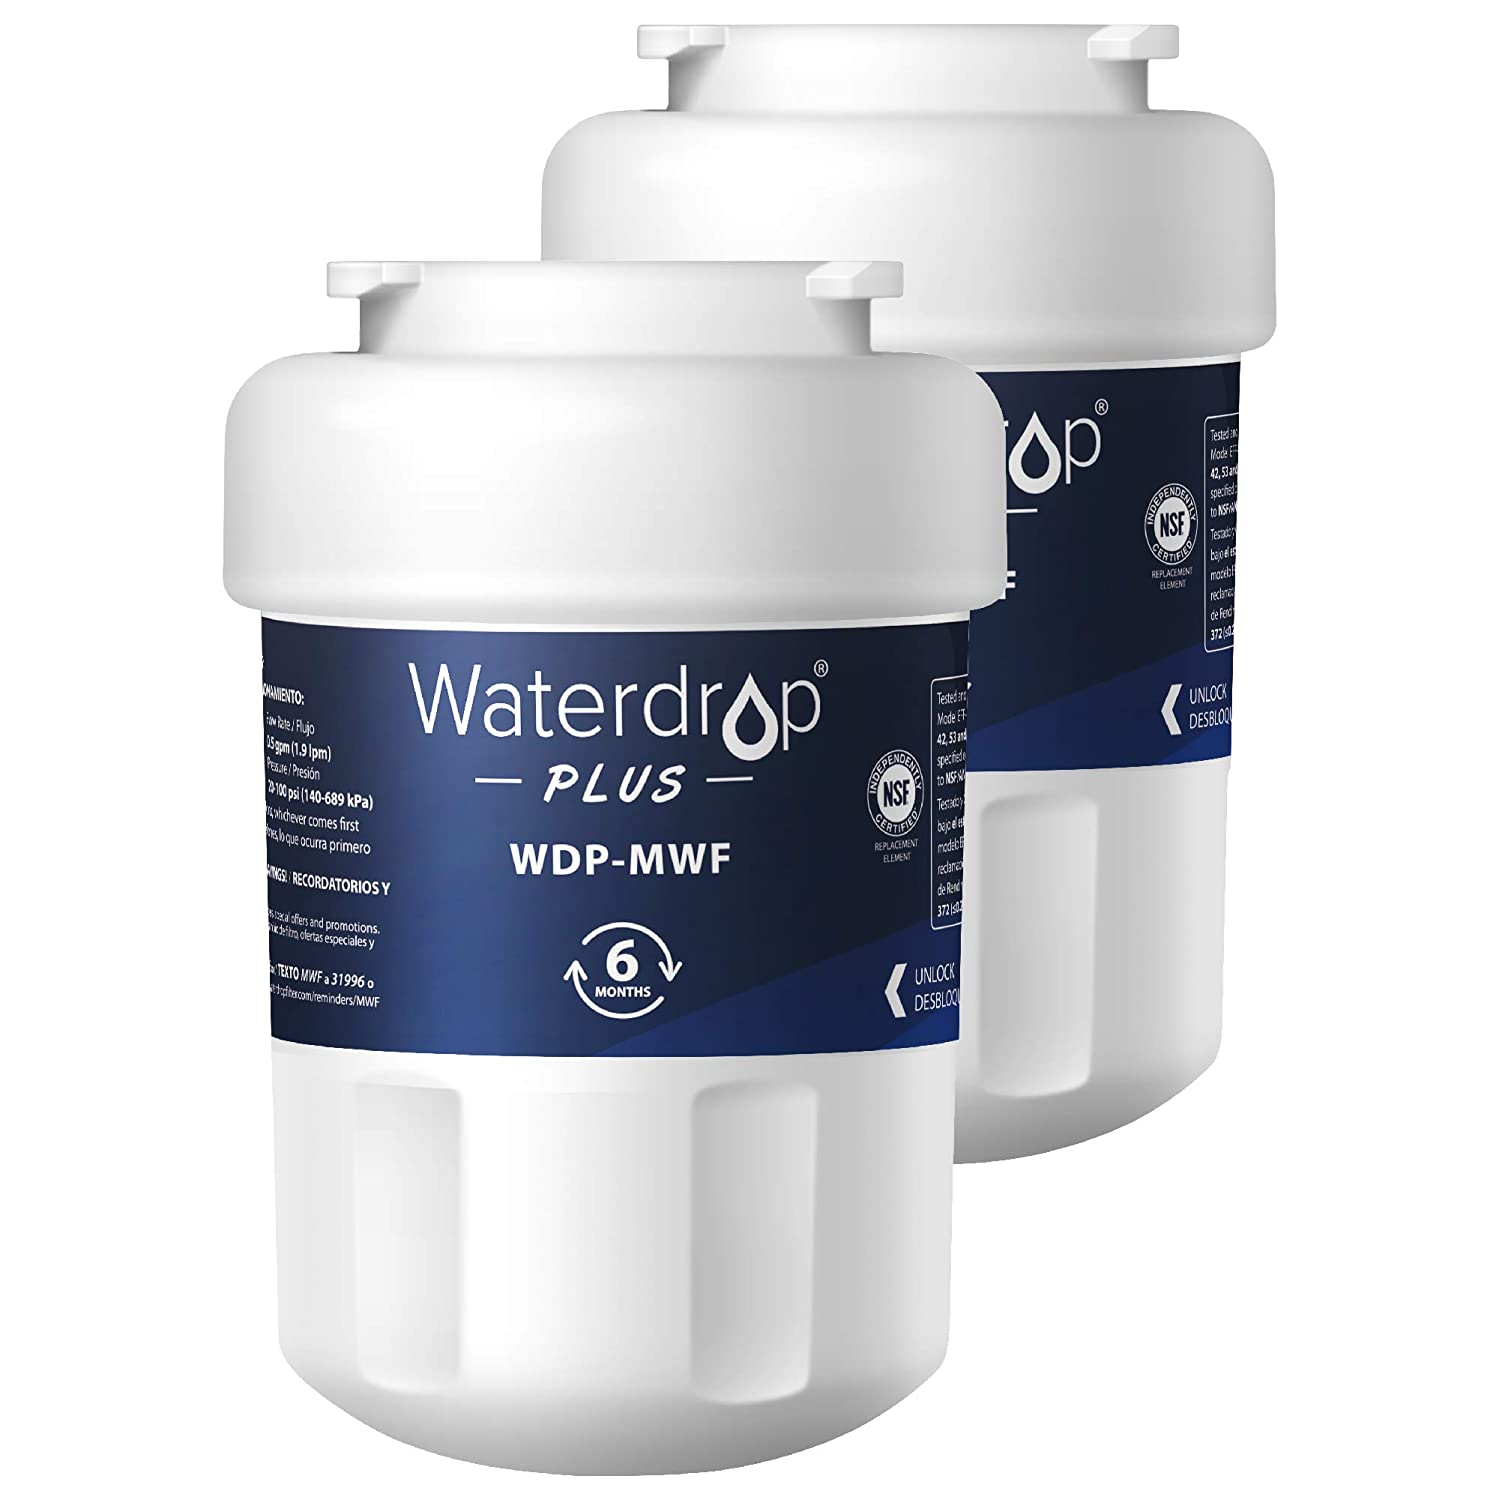 Waterdrop Plus MWF Refrigerator Water Filter, Compatible with GE SmartWater MWF, MWFINT, MWFP, MWFA, GWF, HDX FMG-1, GSE25GSHECSS, WFC1201, RWF1060, Kenmore 9991, Reduces Lead, NSF 401&53&42, 2 Pack